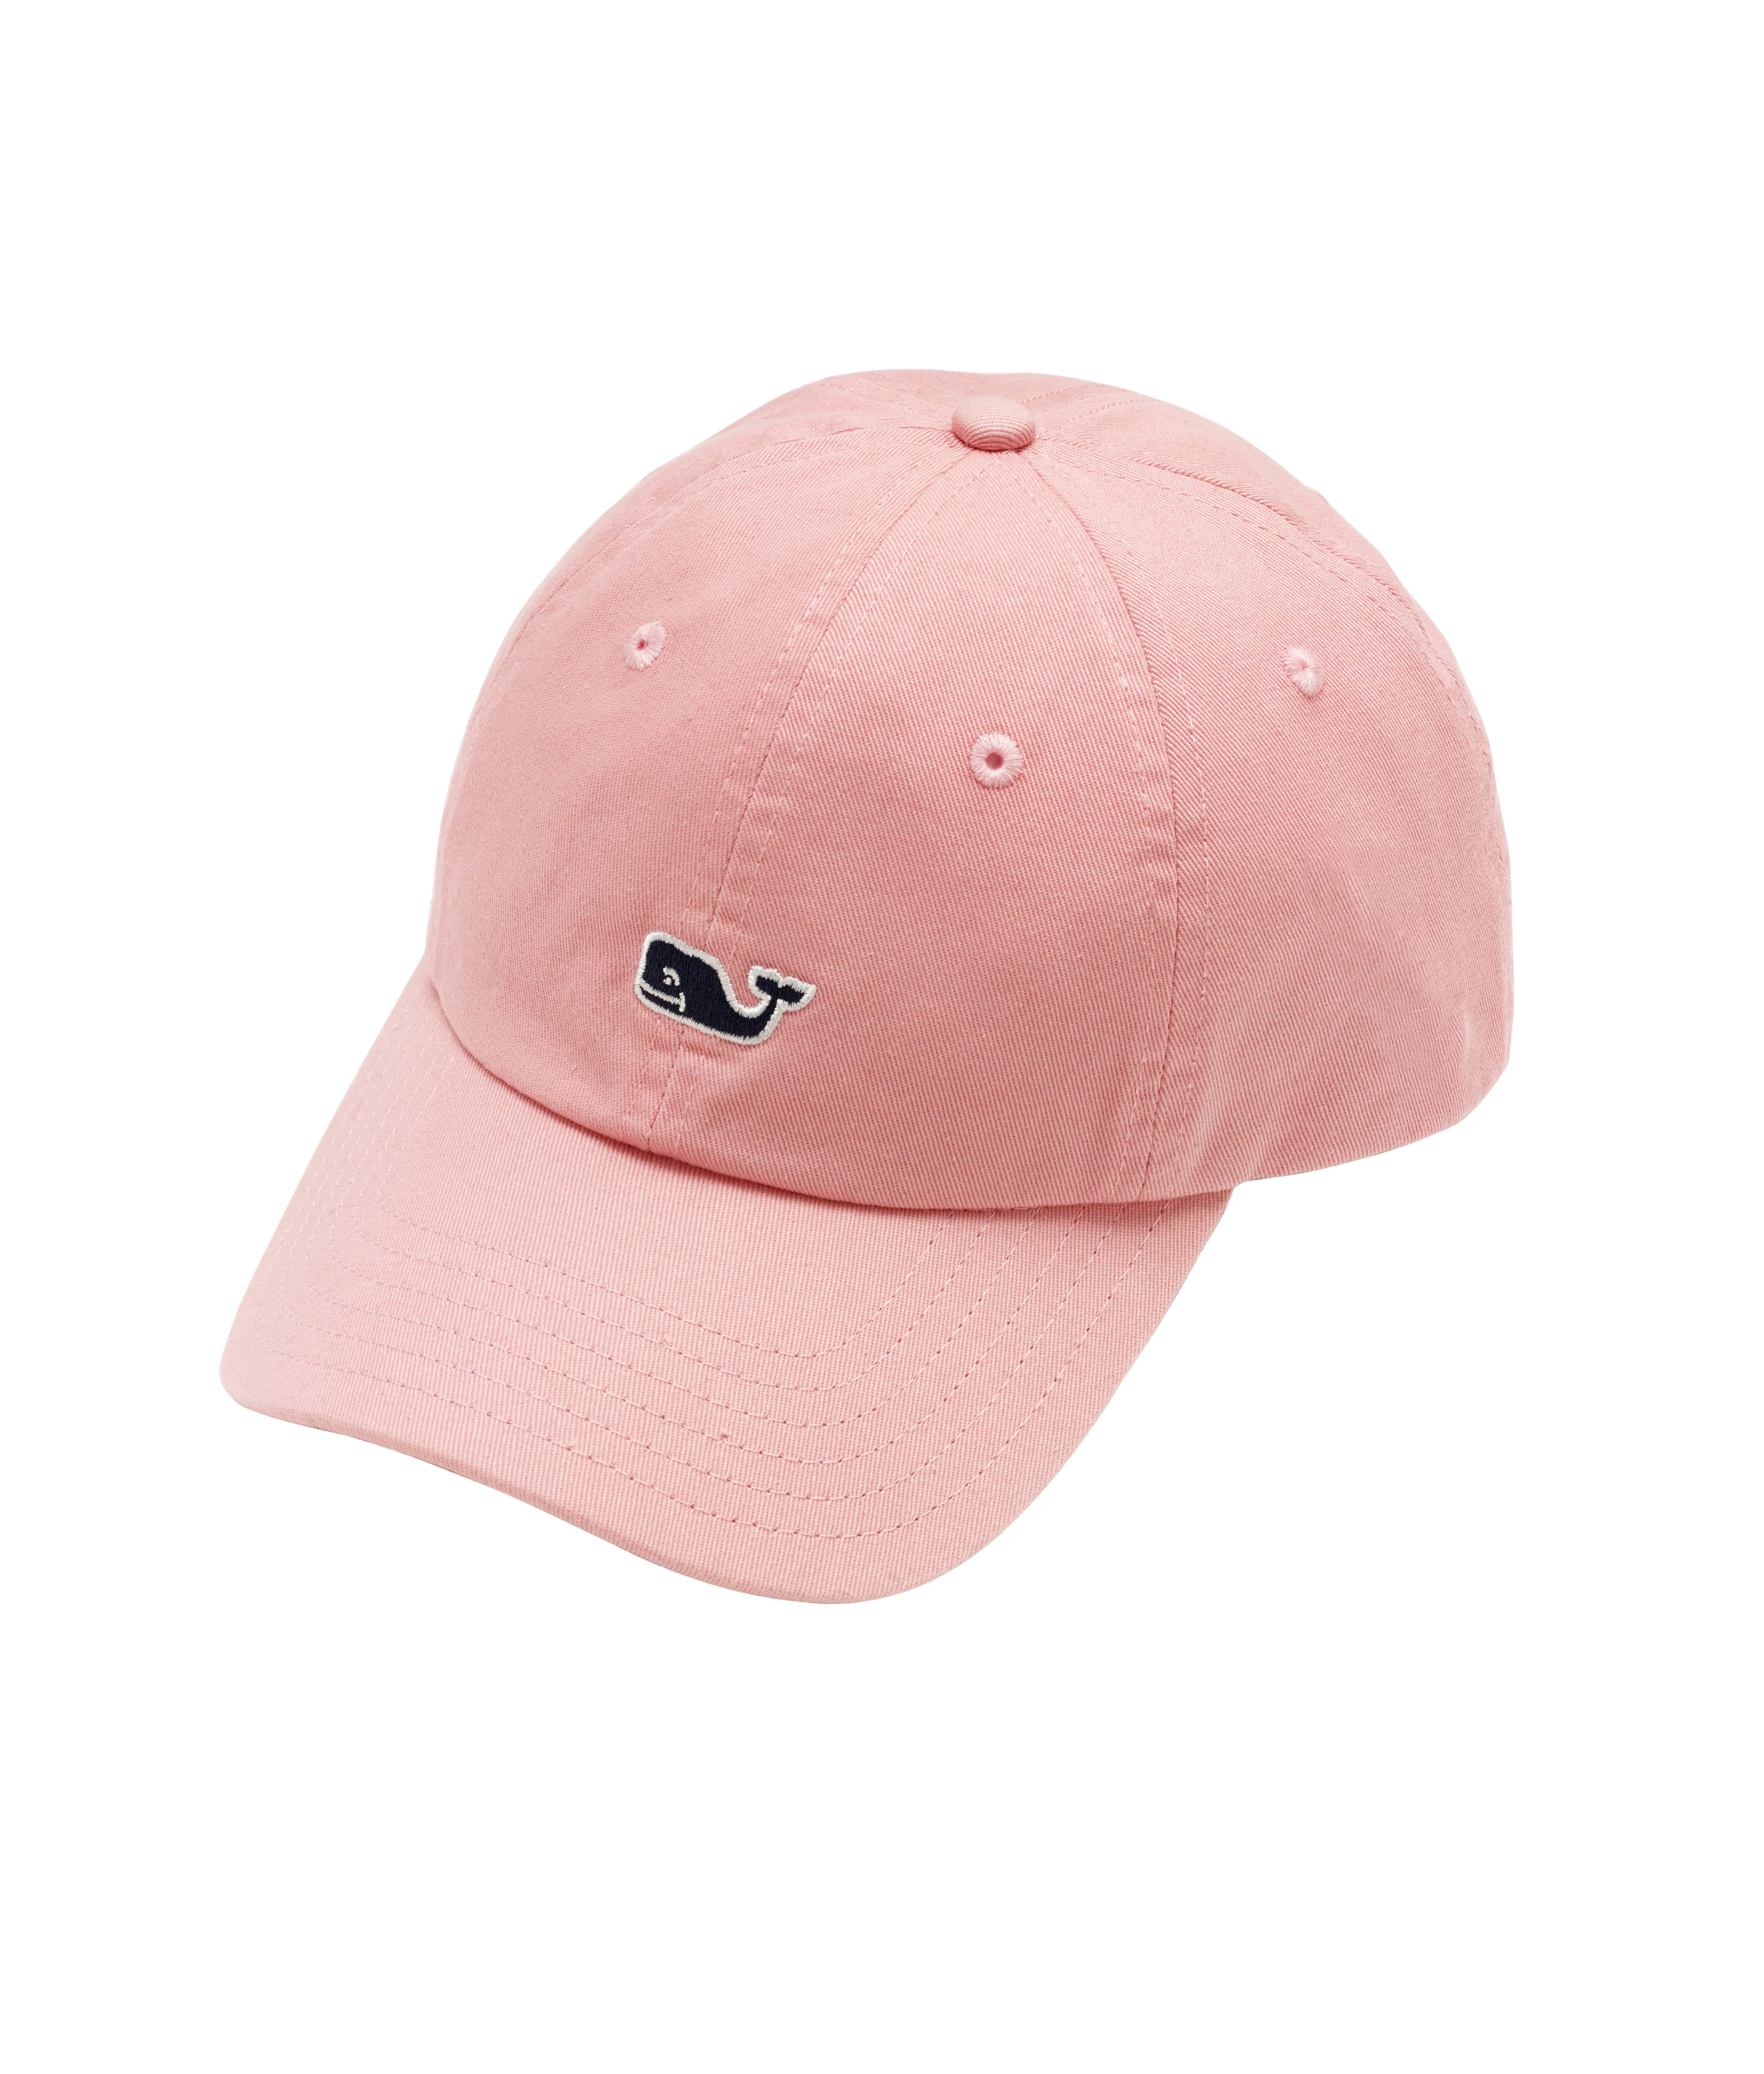 934743806803a Shop Signature Whale Logo Baseball Hat at vineyard vines